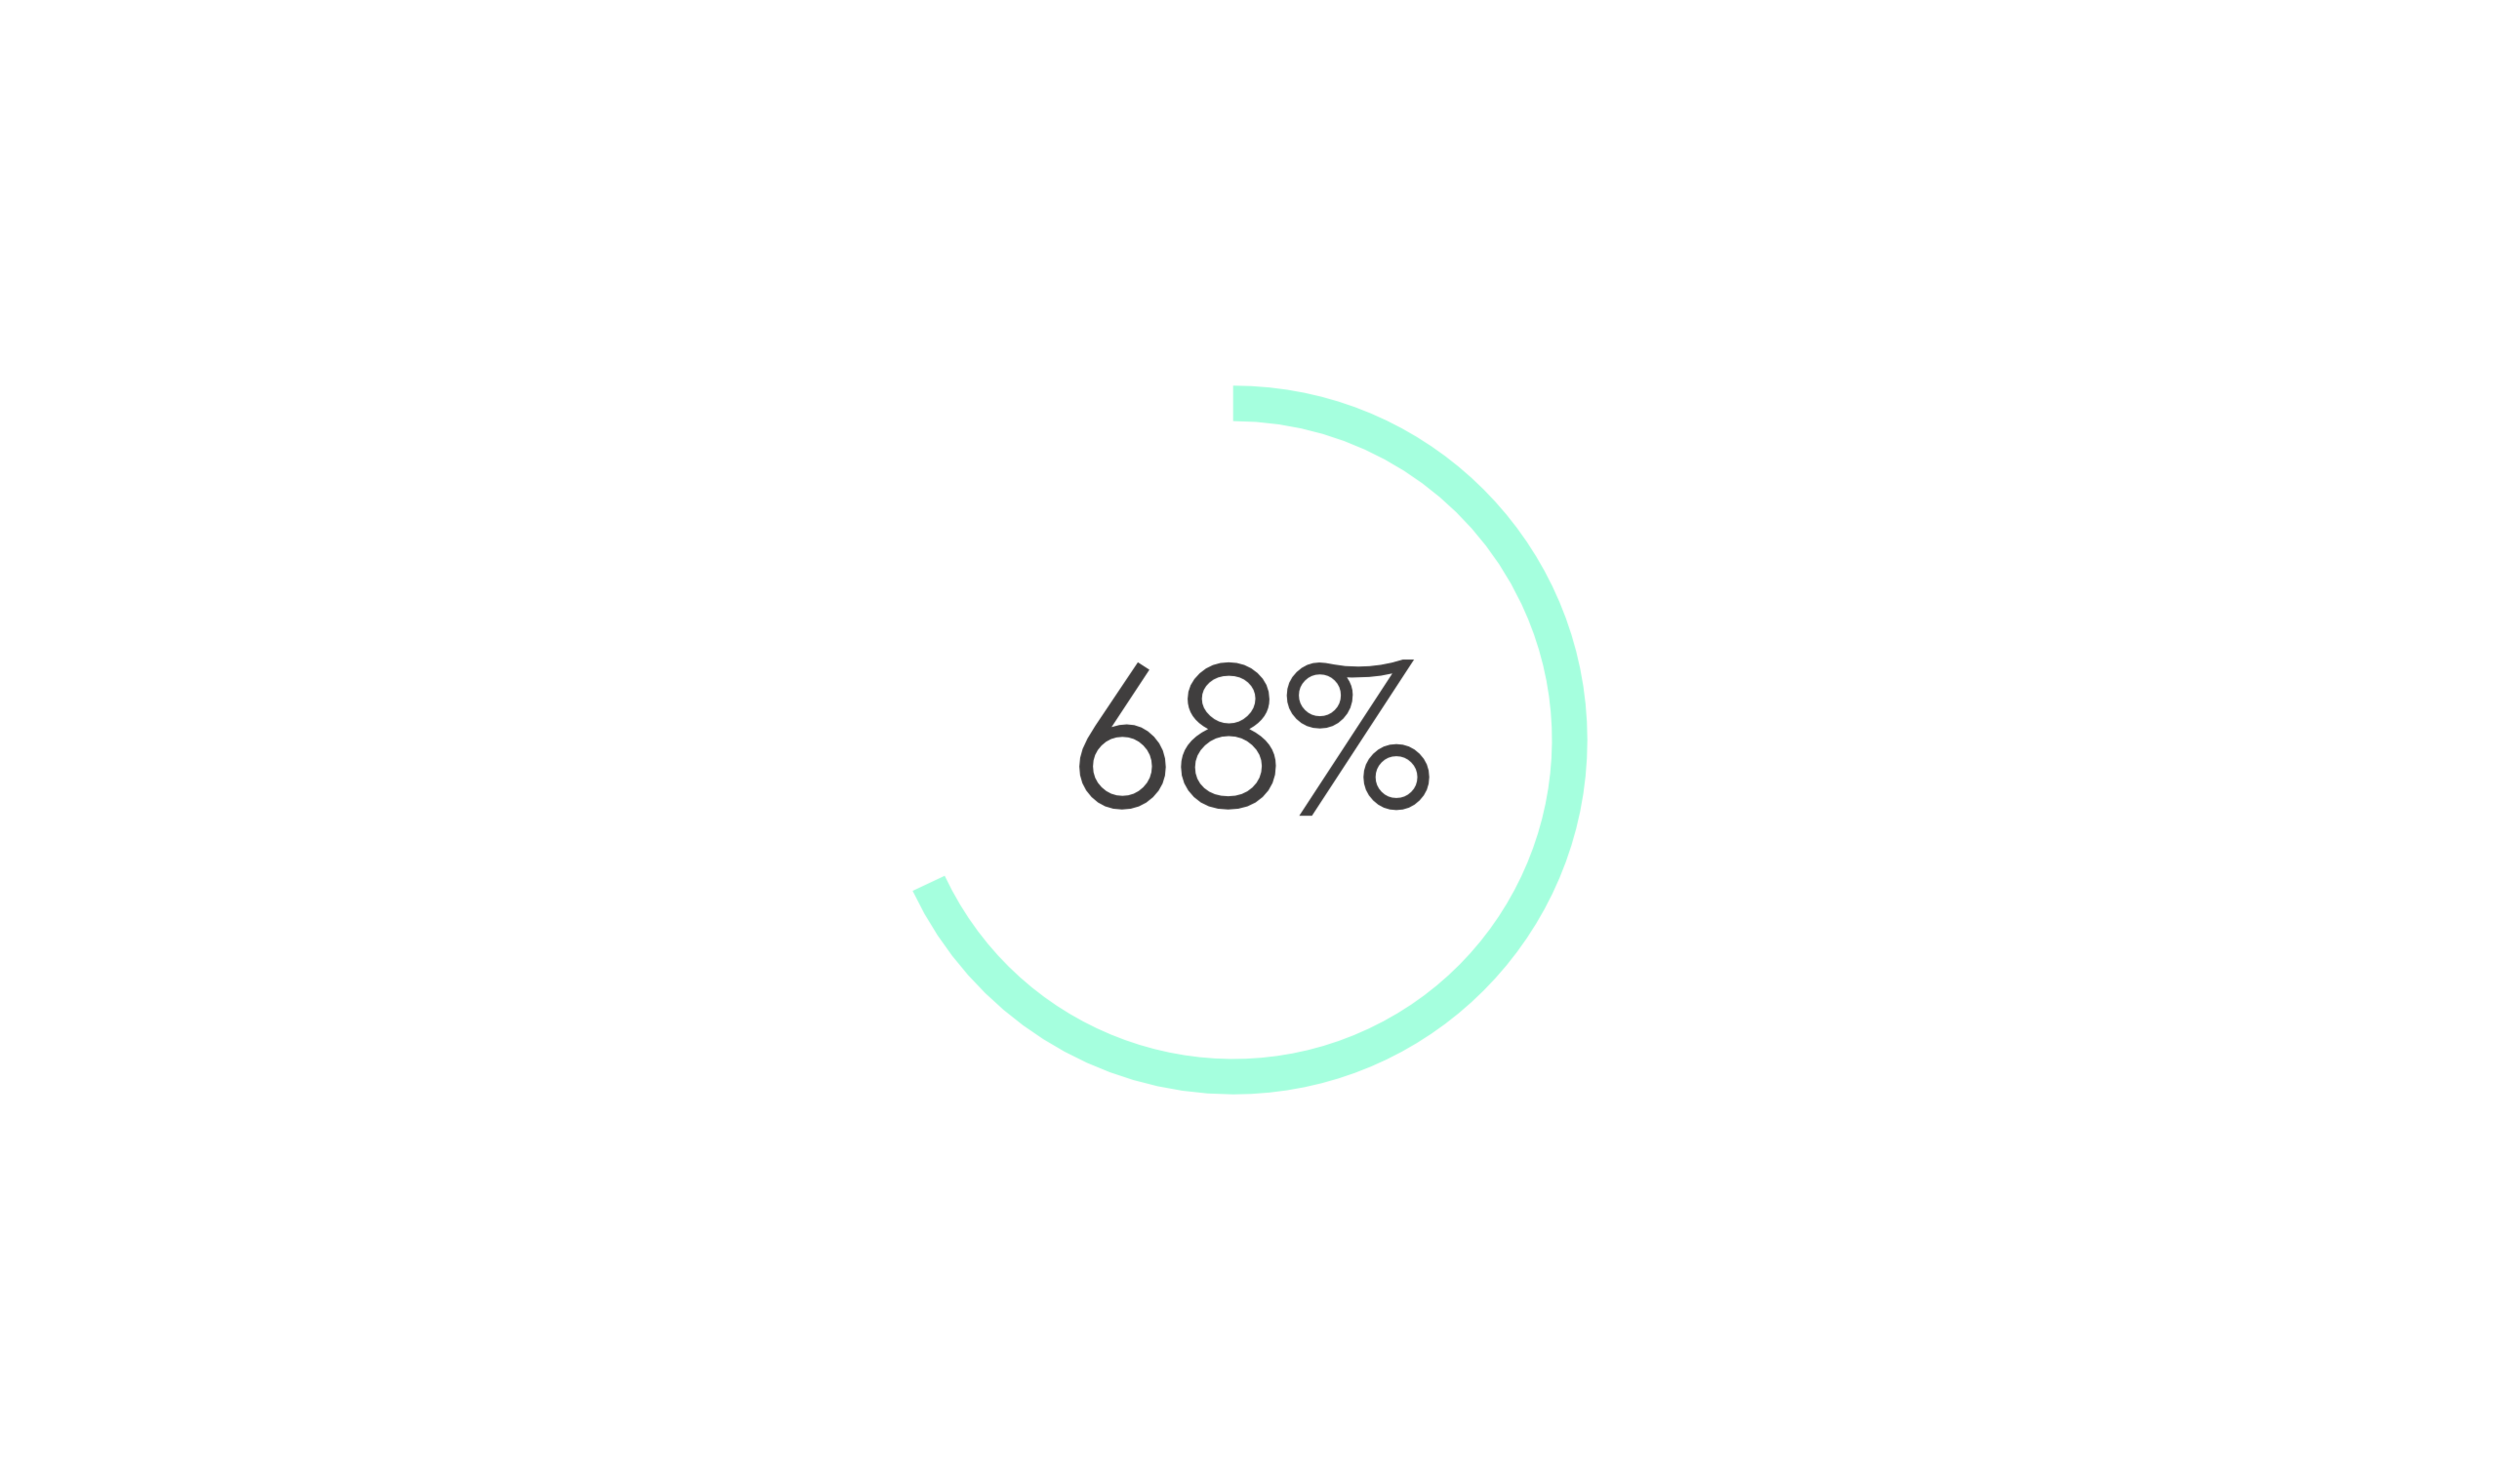 68% pie.png